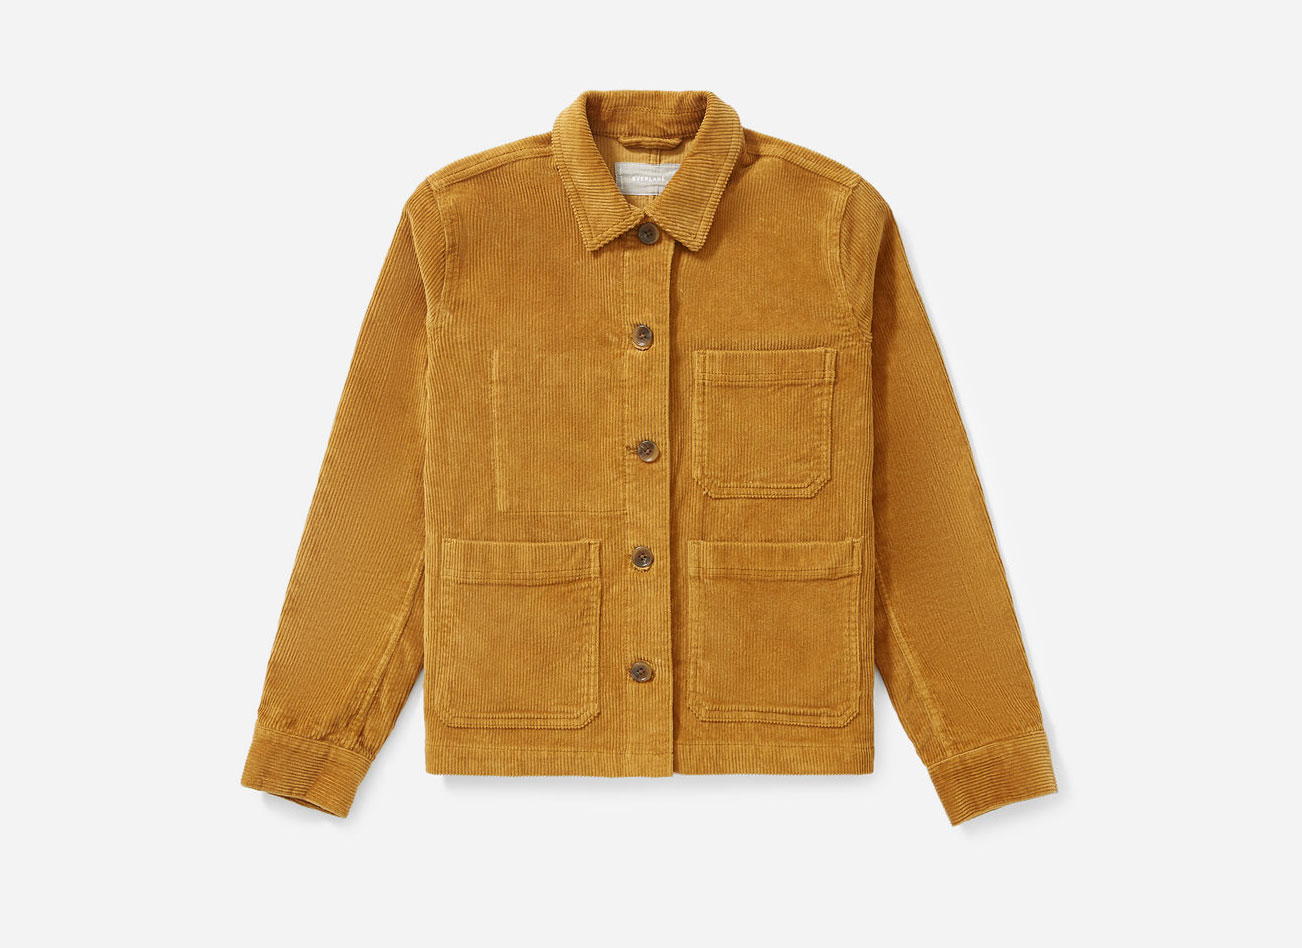 Everlane The Corduroy Chore Jacket